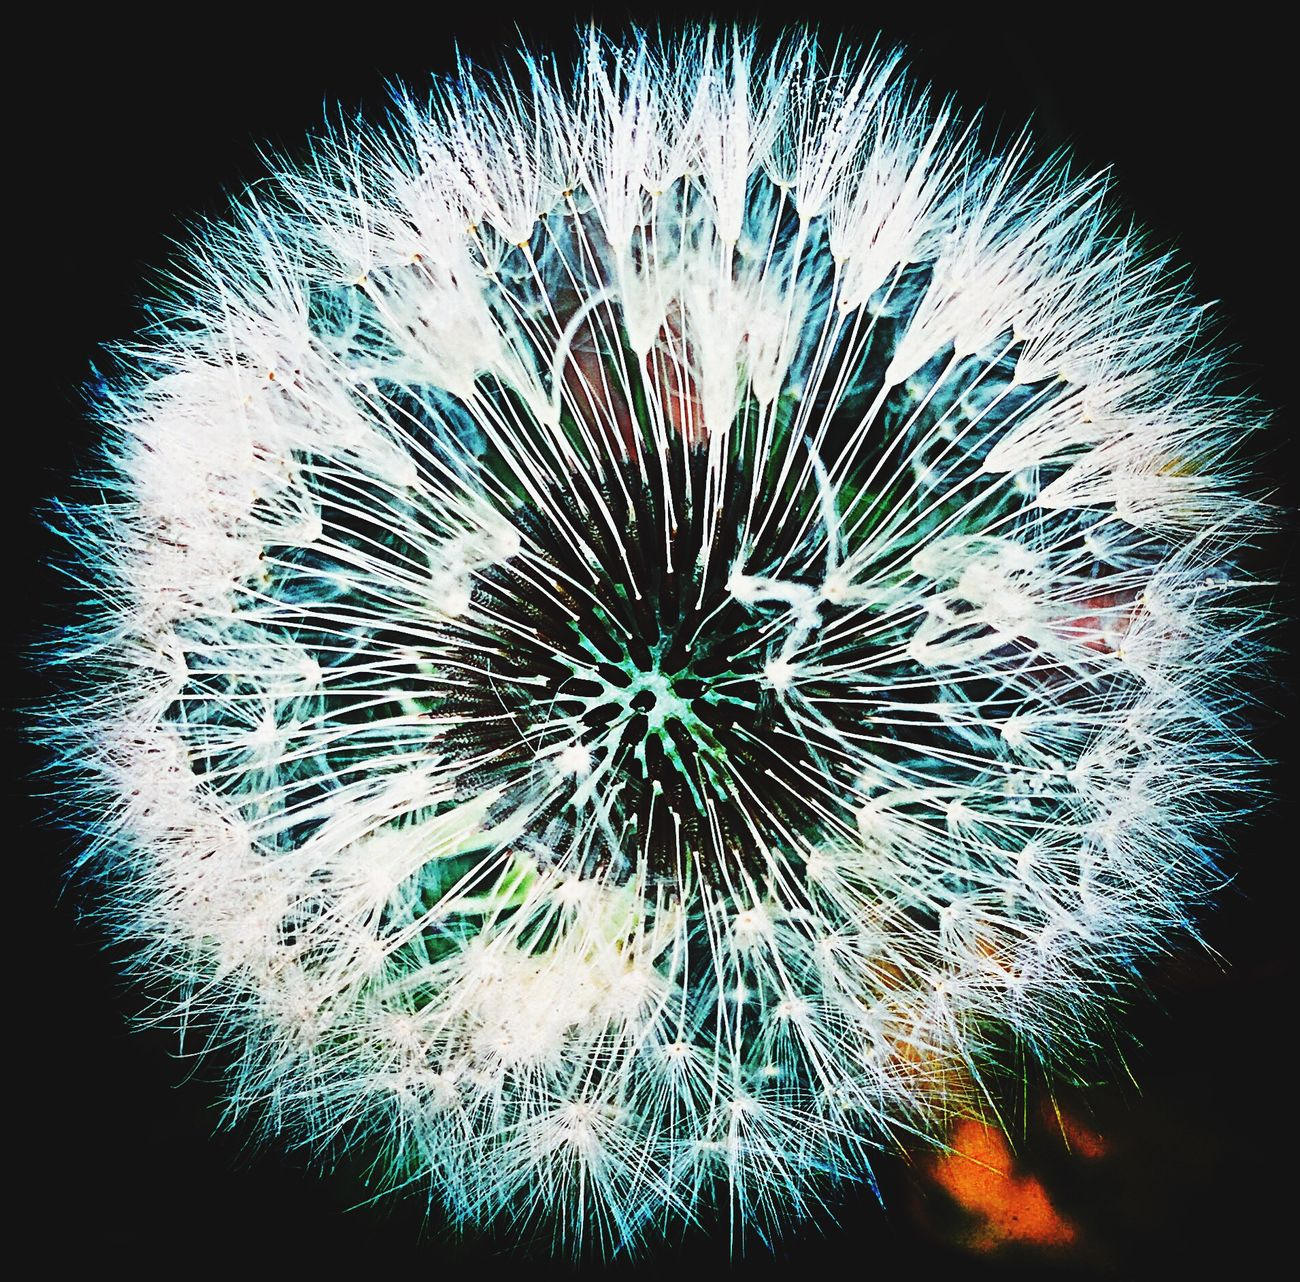 Dandelion seeds Black Background Nature Fragility Close-up Spiked No People Growth Flower Head Spiky Outdoors Day